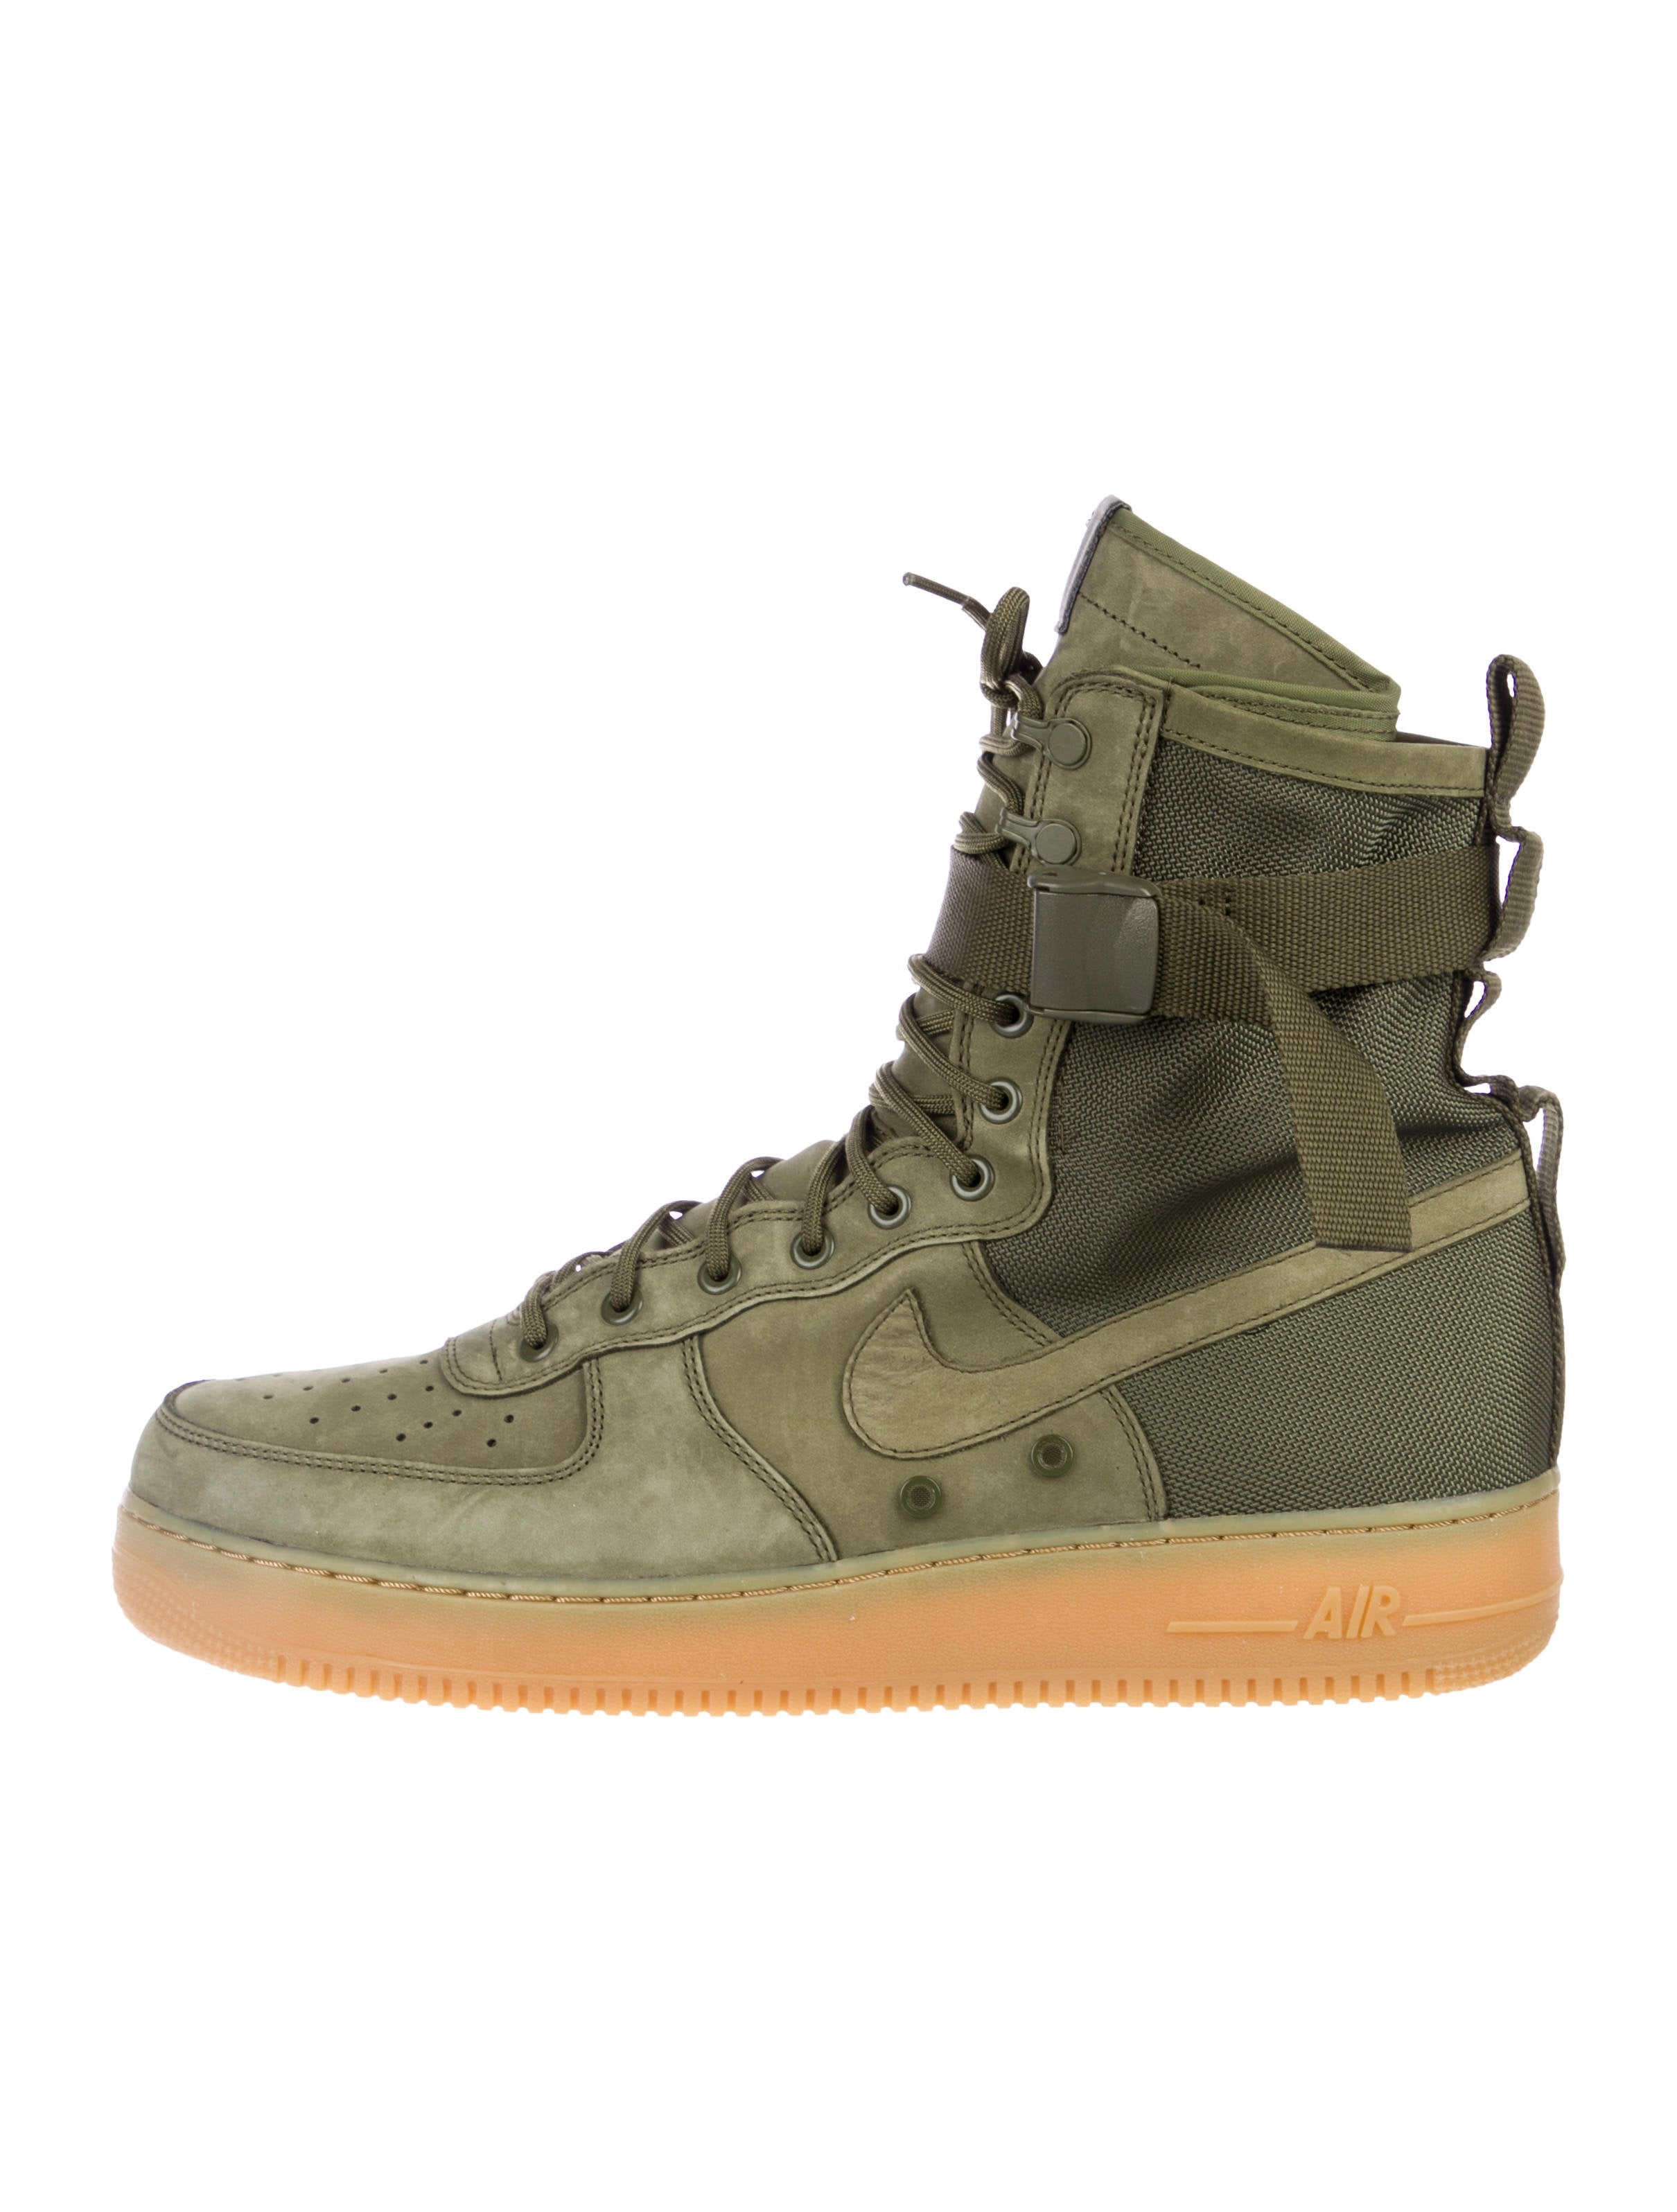 buy online 9a564 8b254 Nike SF Air Force 1 High Special Field Urban Utility Sneakers ...